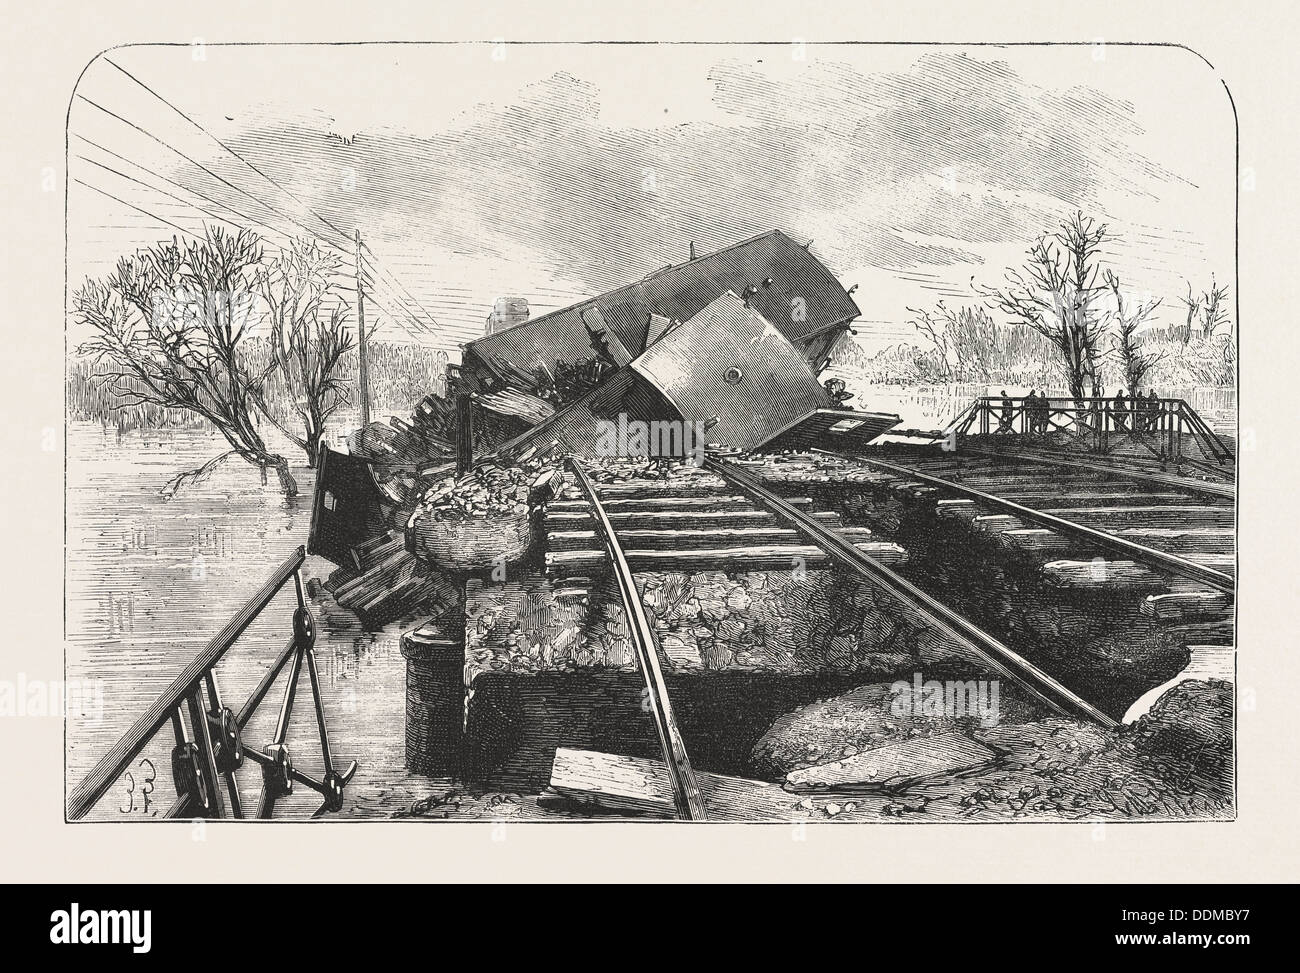 TERRIBLE RAILWAY ACCIDENT IN ALSACE, CAUSED BY THE FALL OF THE BRIDGE OF LUTTERBACH AT THE MOMENT OF THE PASSING OF A TRAIN - Stock Image